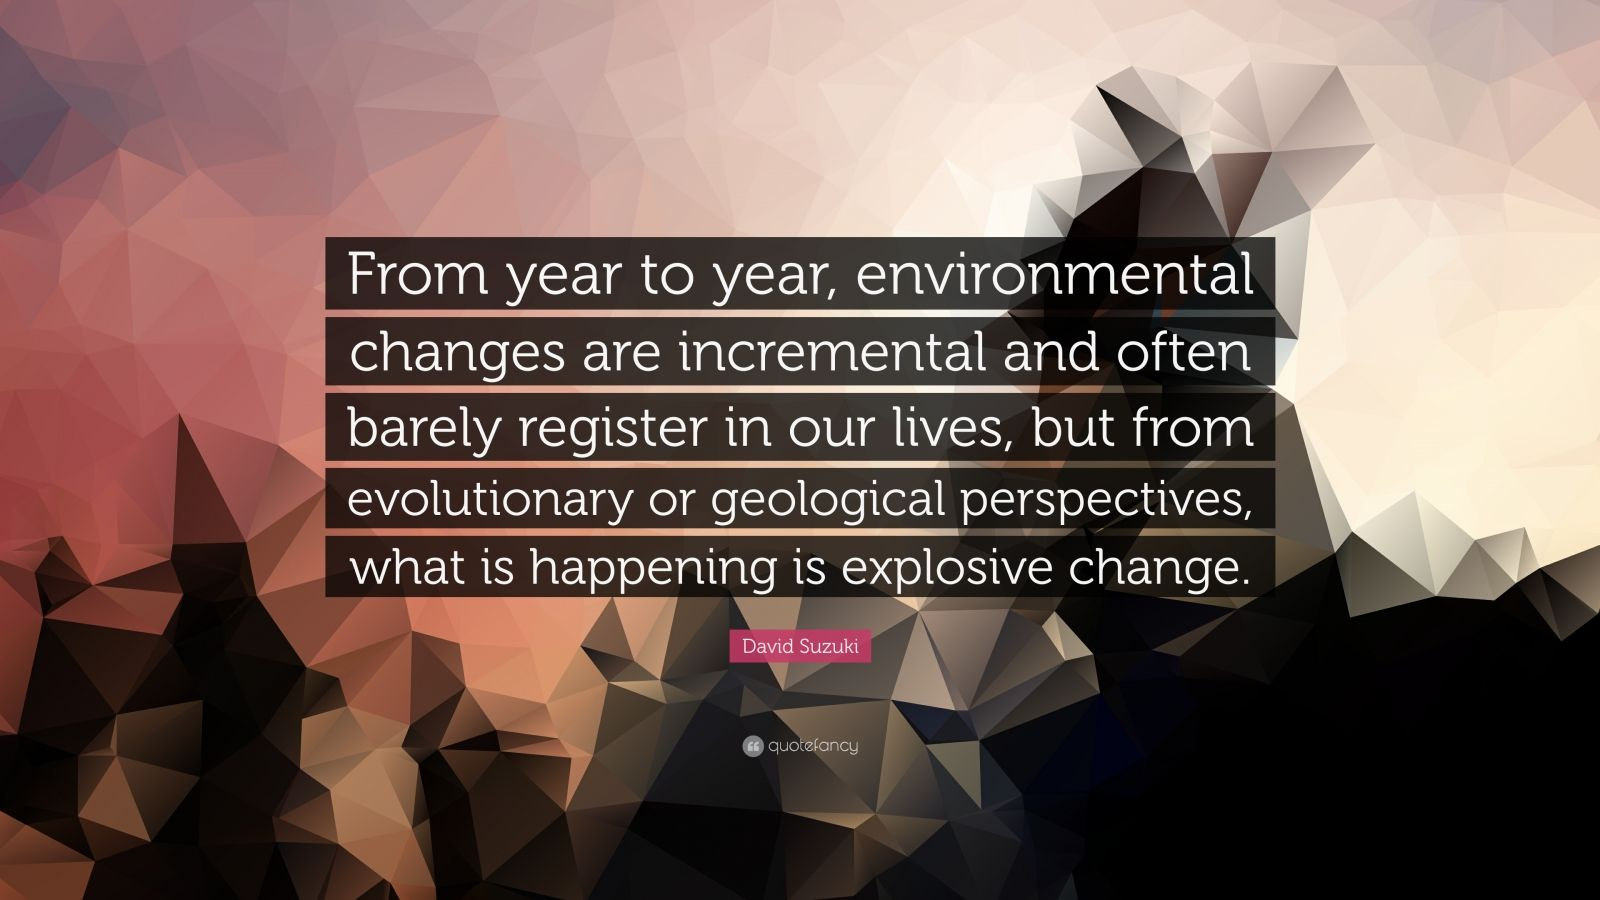 """David Suzuki Quote: """"From year to year, environmental changes are incremental and often barely register in our lives, but from evolutionary or geological perspectives, what is happening is explosive change."""""""